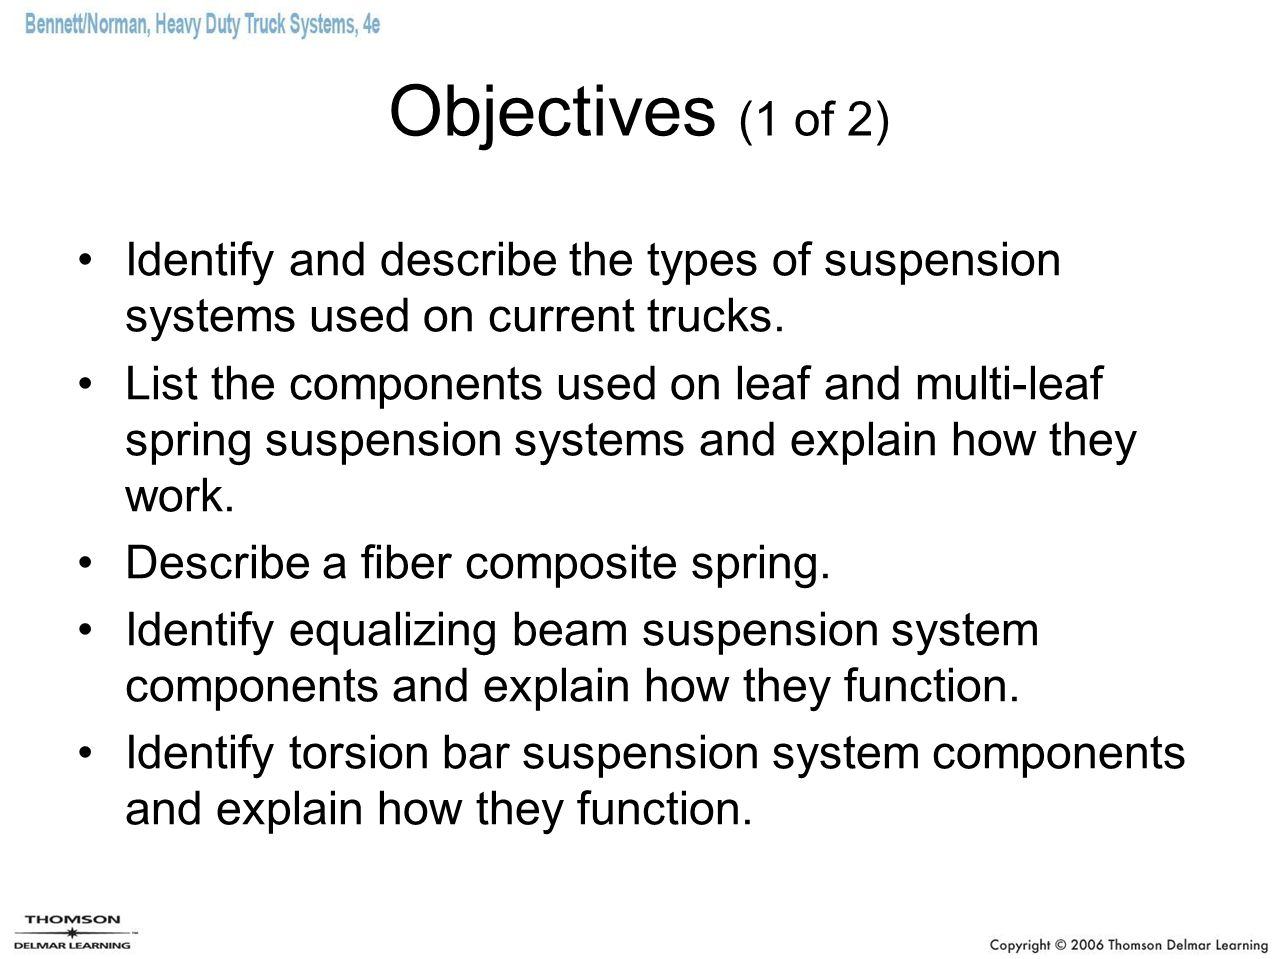 Objectives (1 of 2) Identify and describe the types of suspension systems used on current trucks.